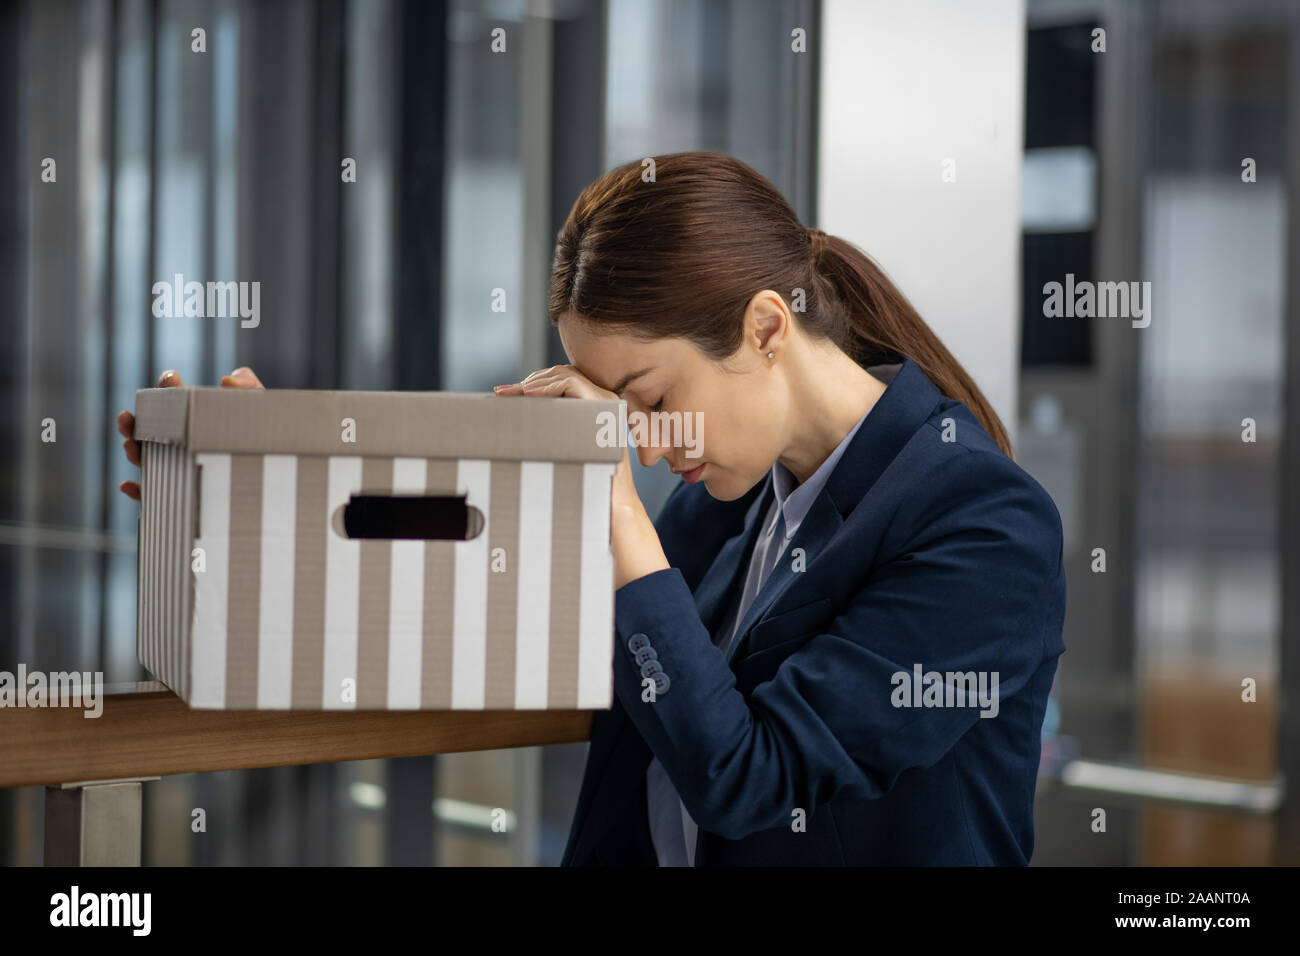 Dark-haired woman wearing dark jacket feeling awful after losing her job Stock Photo